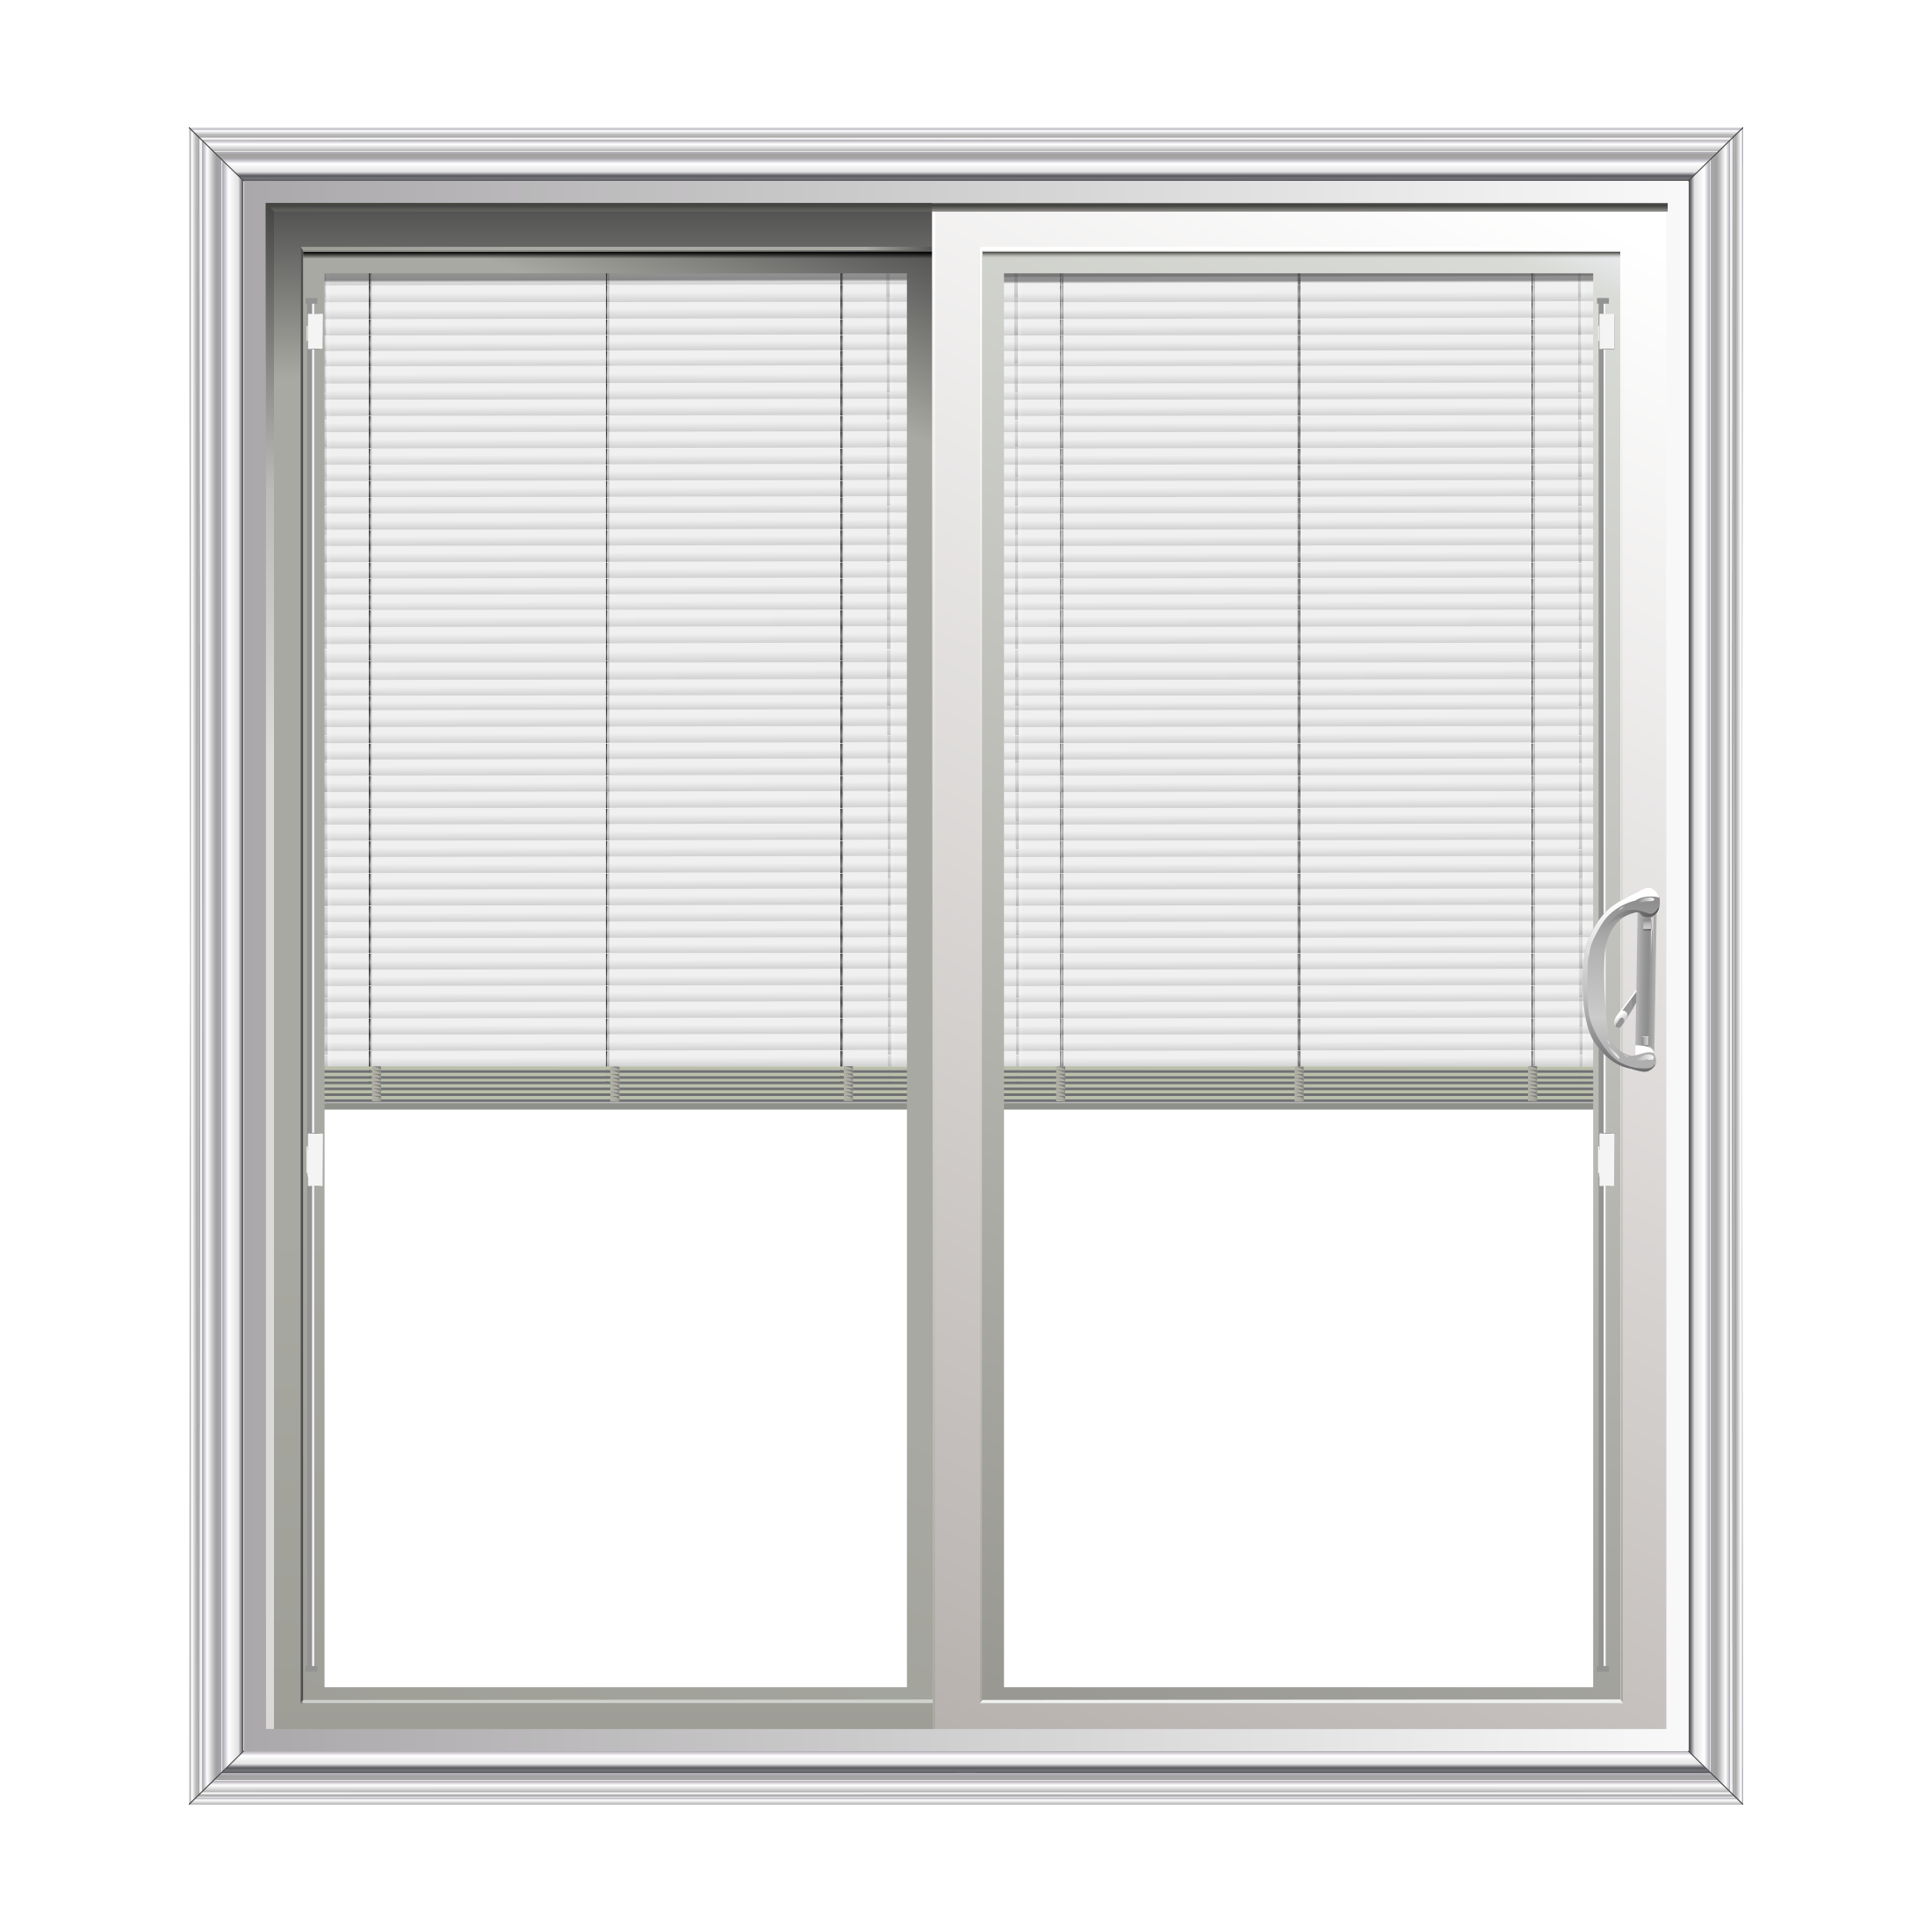 Door vinyl seamless png. Replacement windows patio doors